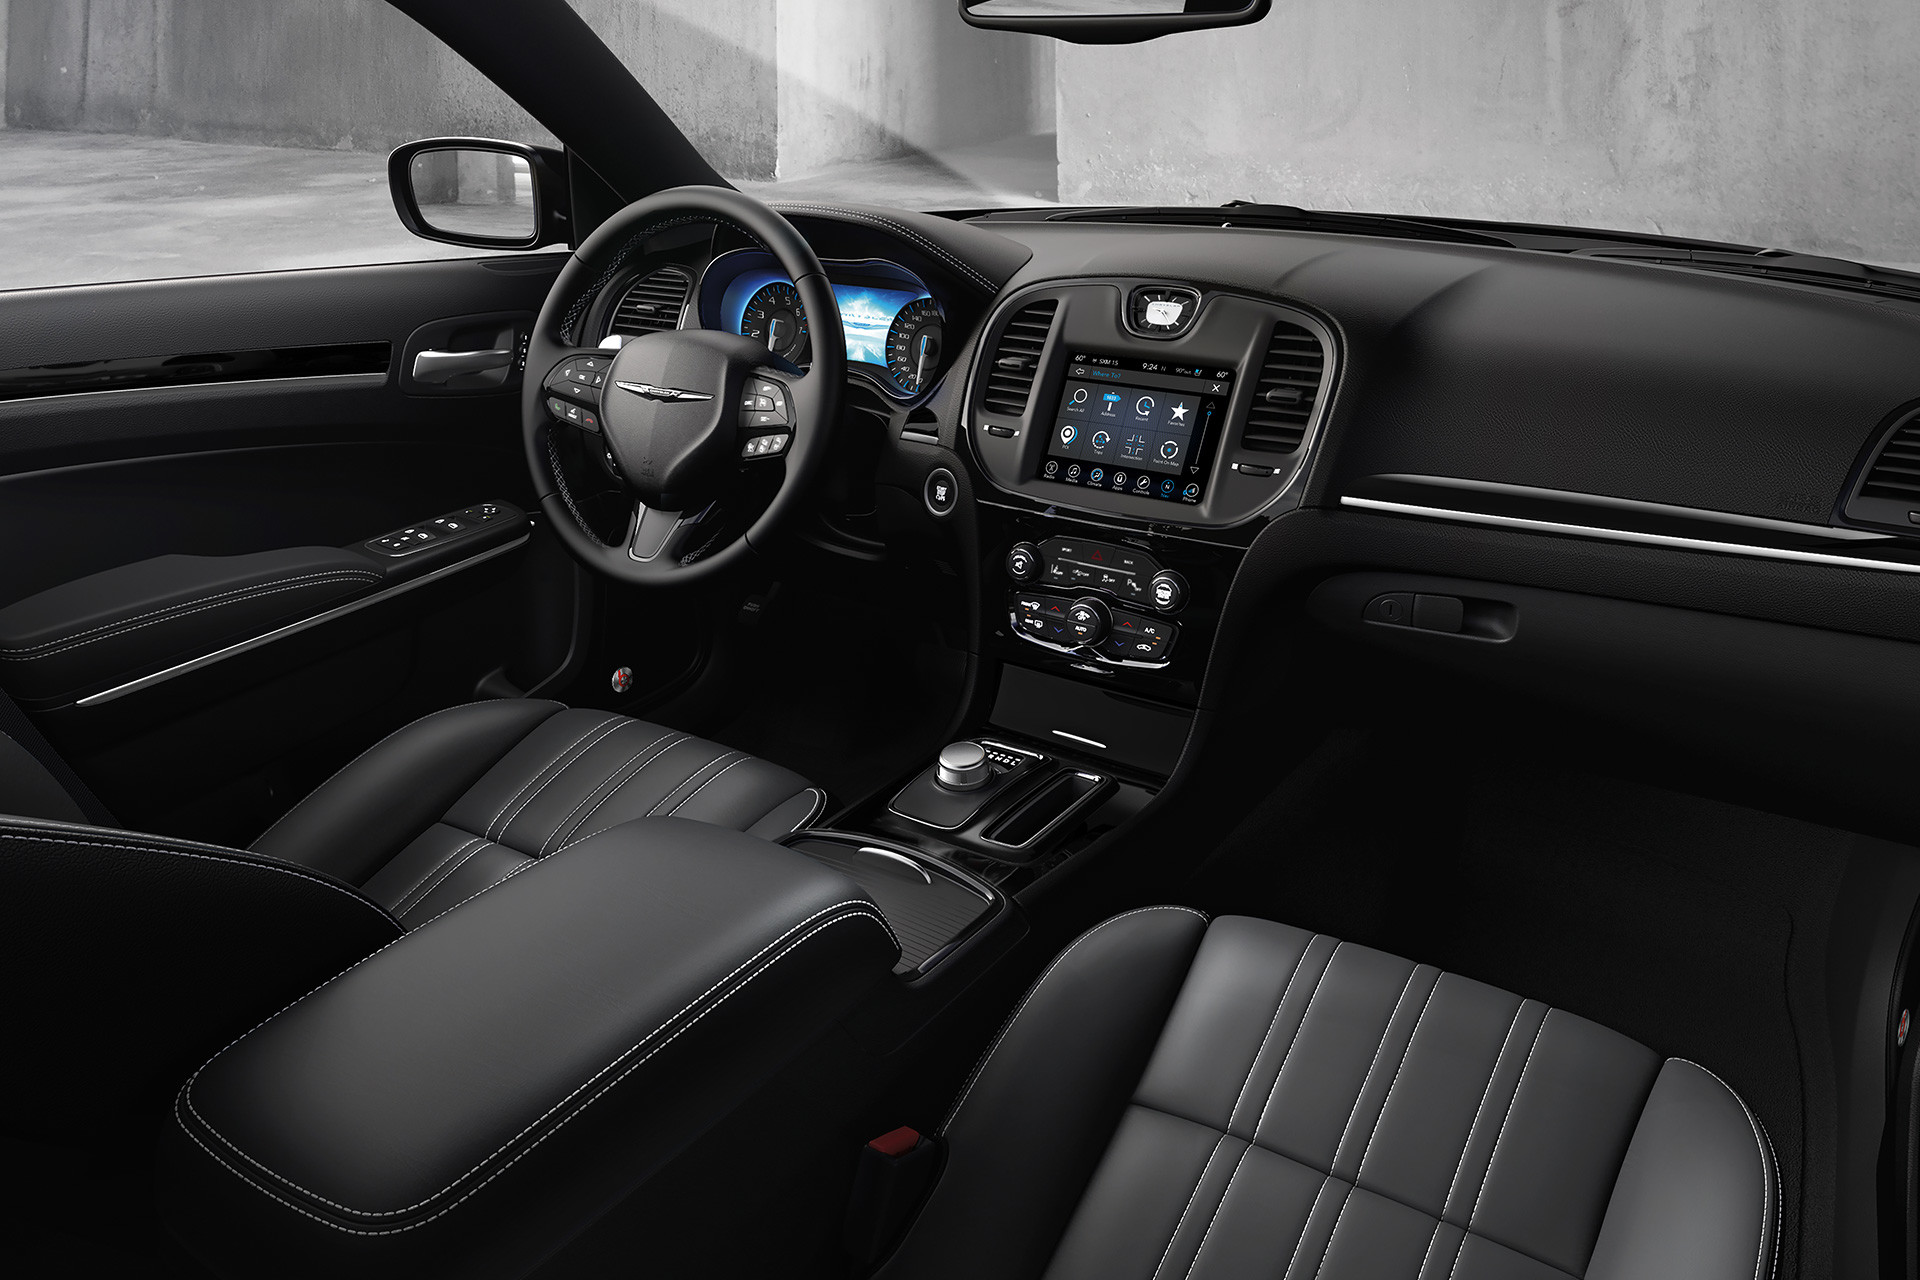 2019 Chrysler 300 with 14 interiors